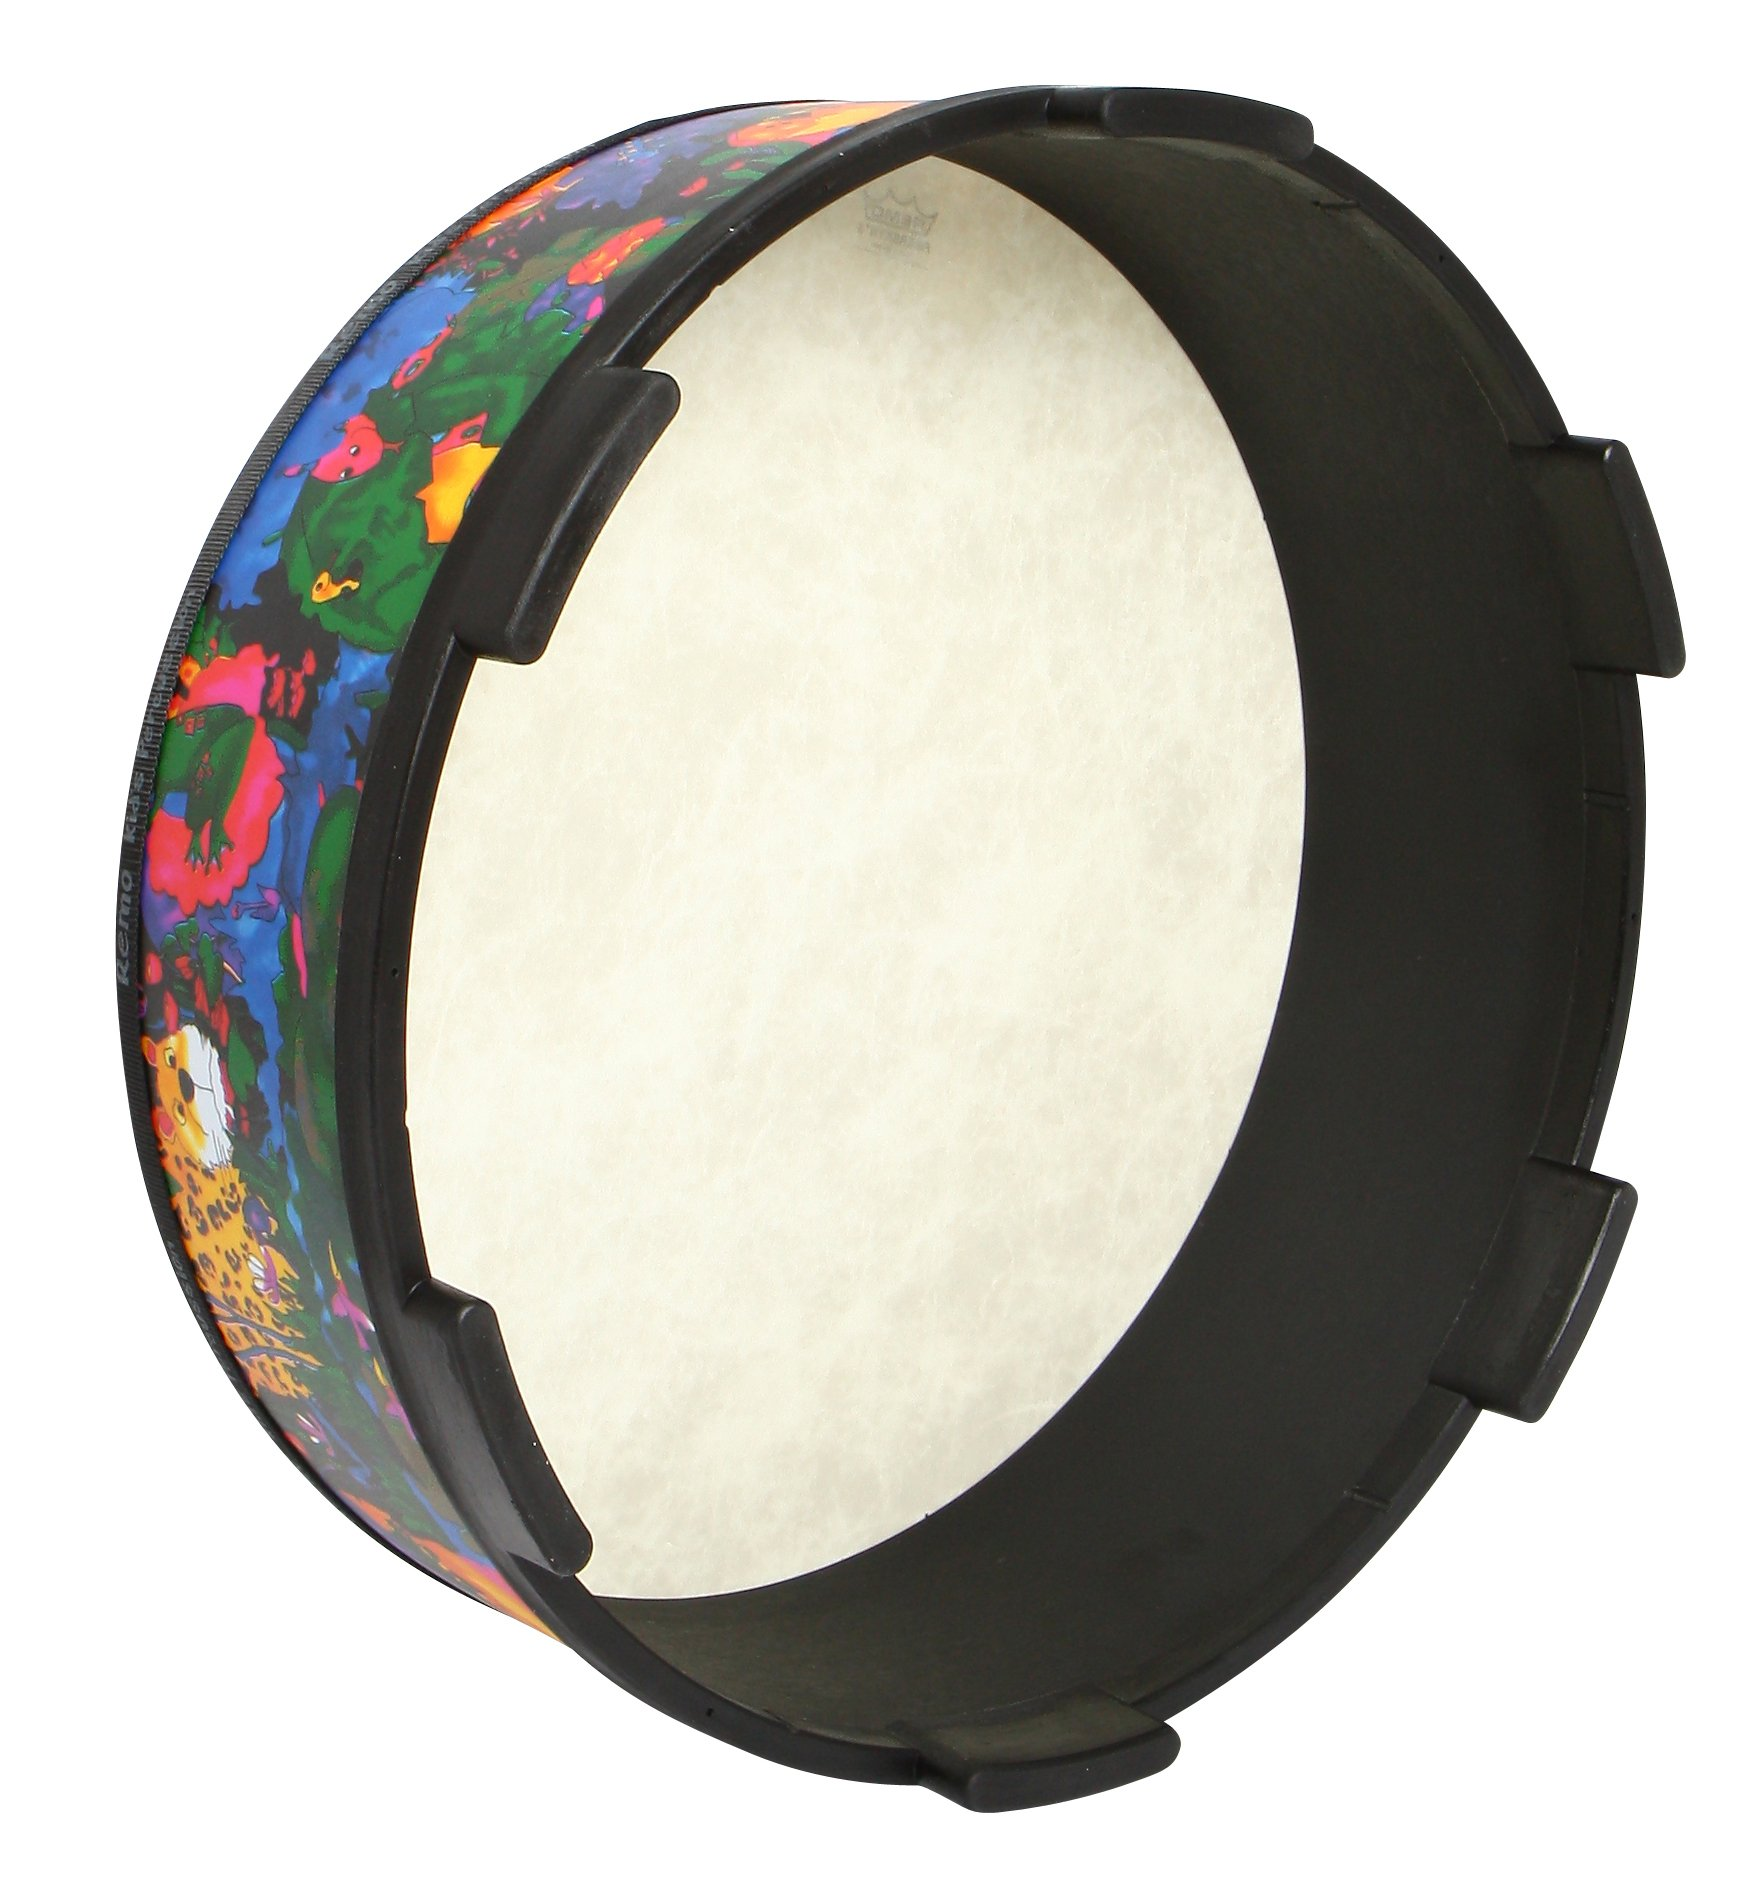 Remo KIDS PERCUSSION Gathering Drm 22x8 Rain For by Remo